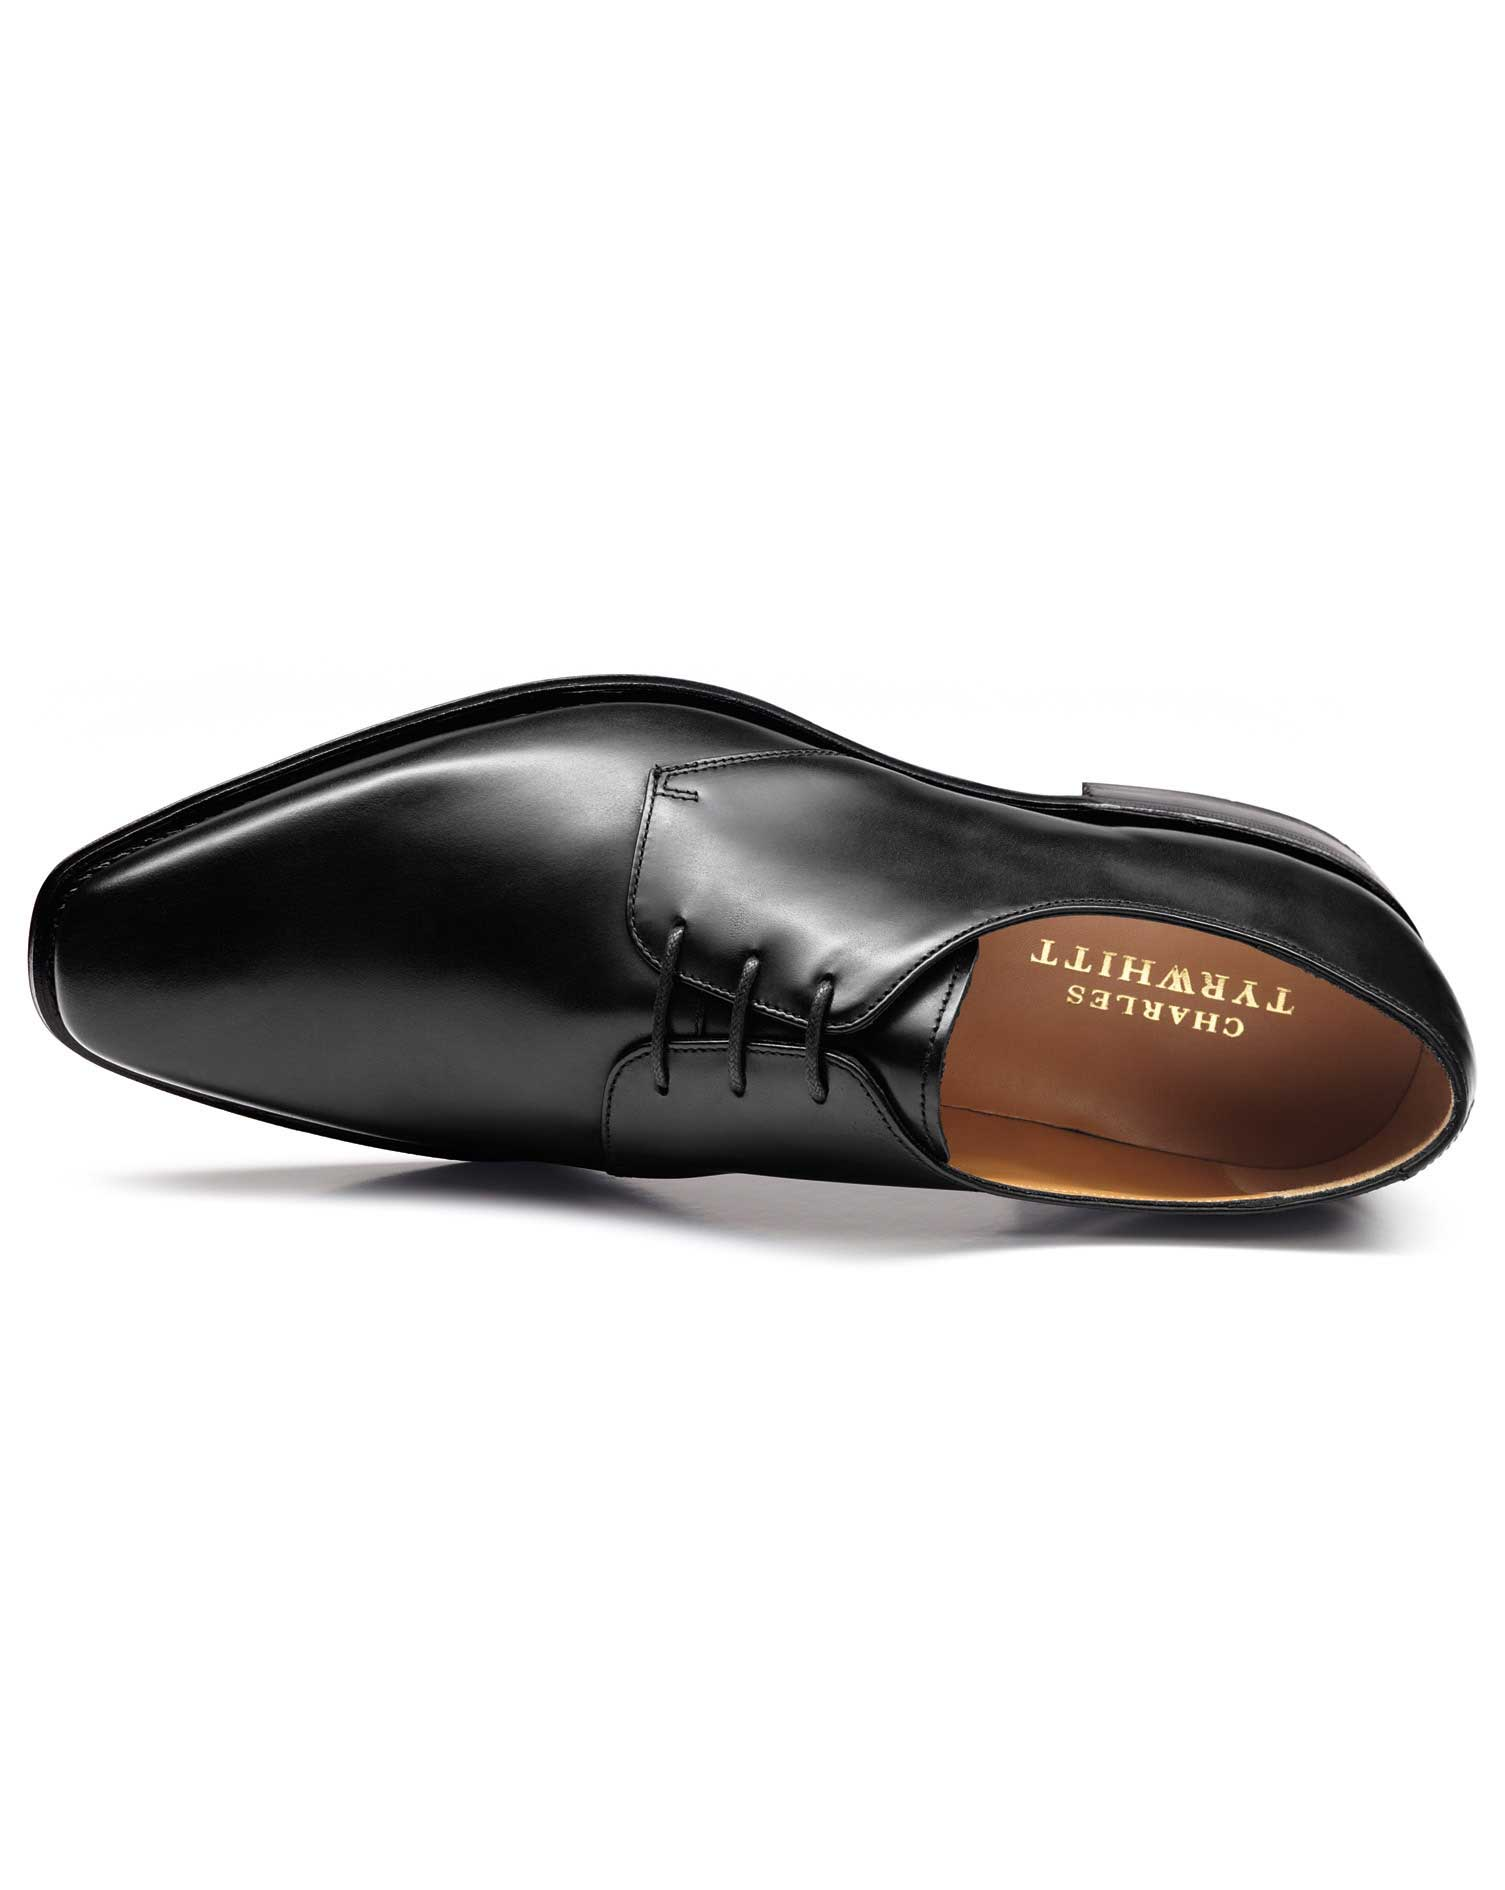 Black Goodyear Welted Derby Shoe Size 10 R by Charles Tyrwhitt